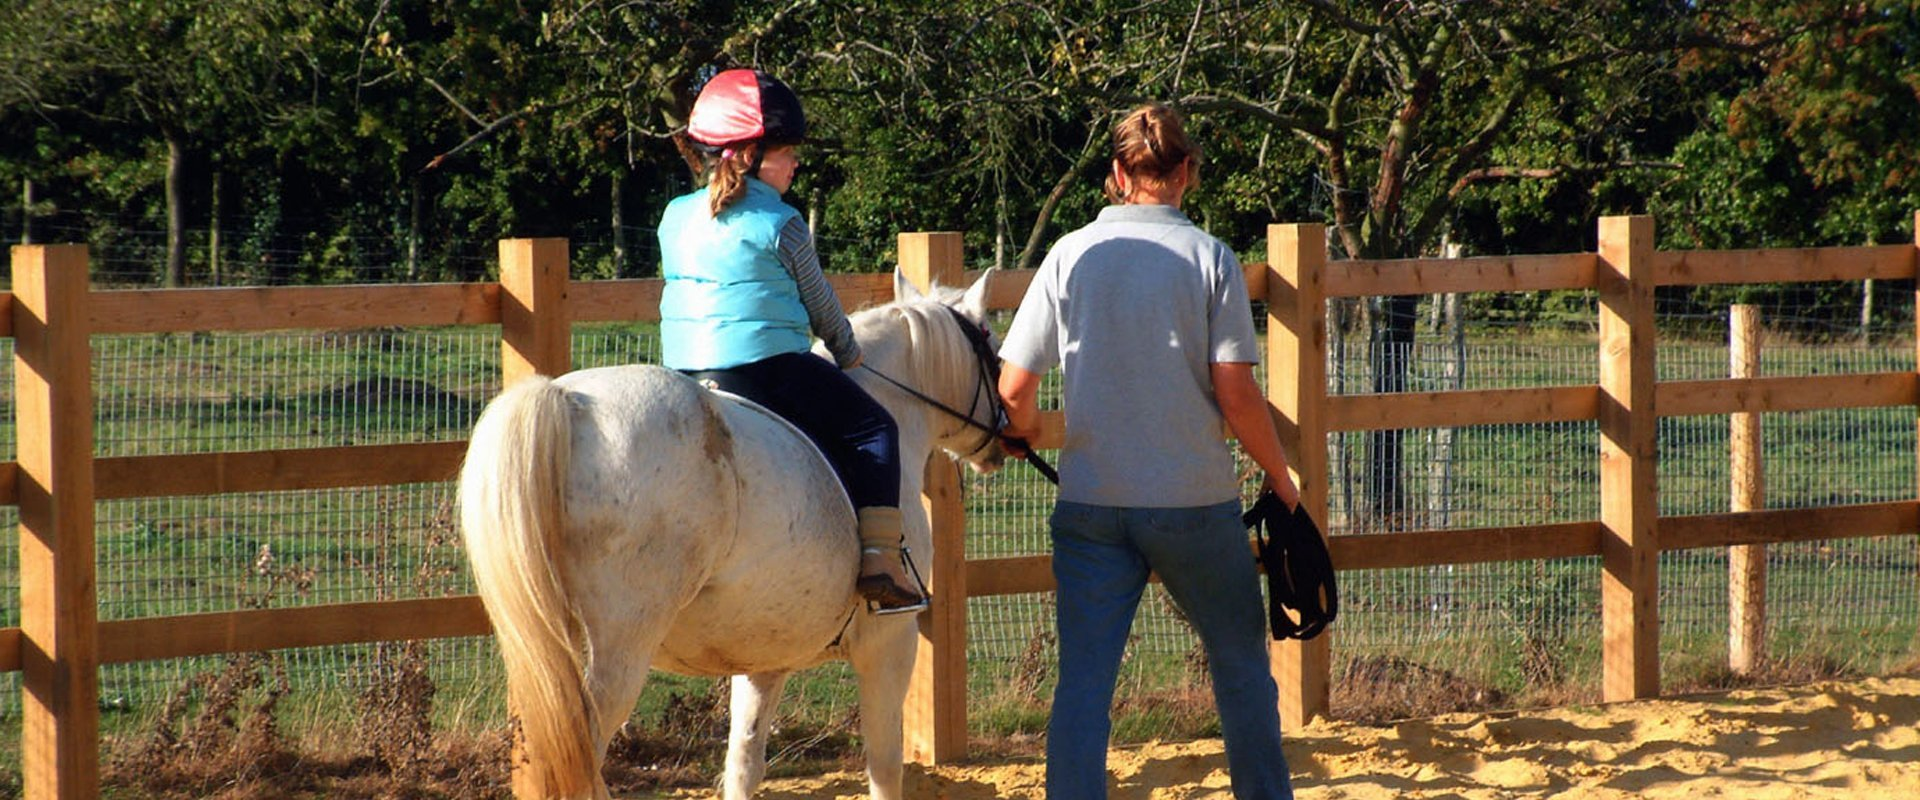 horse riding trainers